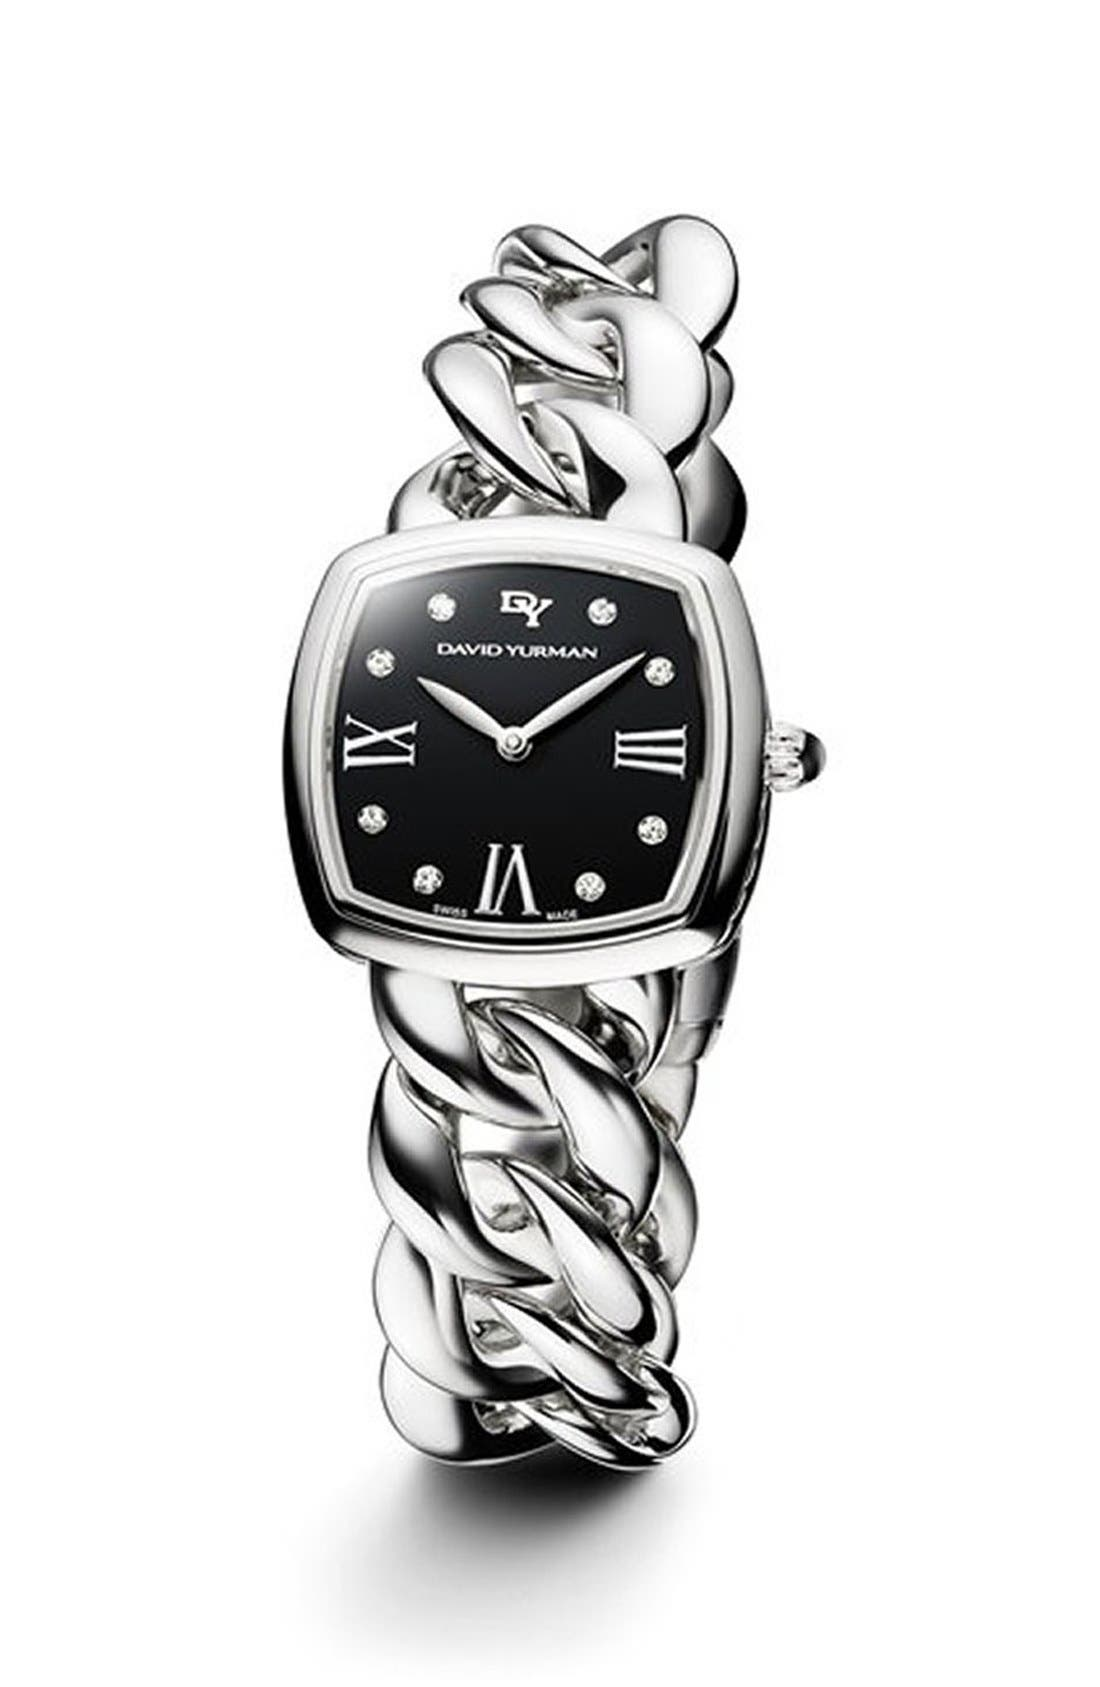 DAVID YURMAN Albion 27mm Stainless Steel Quartz Watch with Diamonds